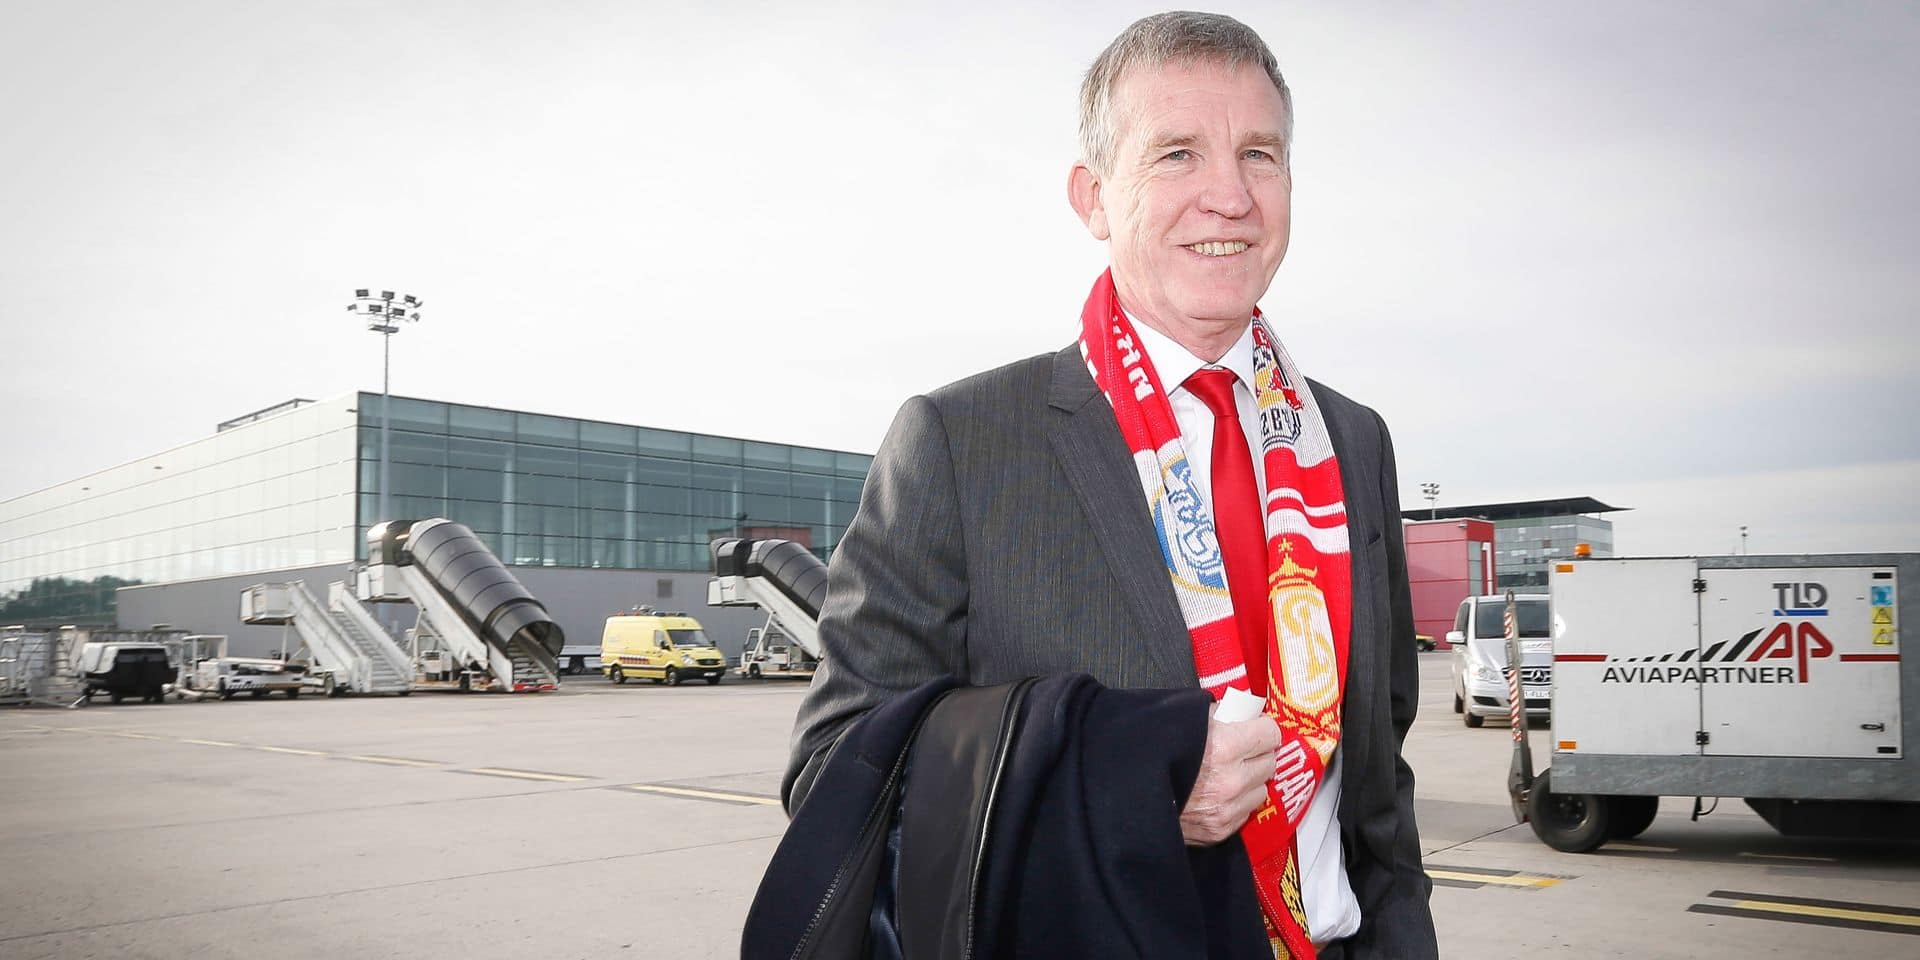 20131002 - LIEGE, BELGIUM: Standard's chairman Roland Duchatelet pictured in Liege airport, Wednesday 02 October 2013. Belgian soccer team Standard de Liege is traveling to Boras, Sweden to play Swedish team IF Elfsborg on the second day of the group stage of the Europa League tournament tomorrow. BELGA PHOTO BRUNO FAHY